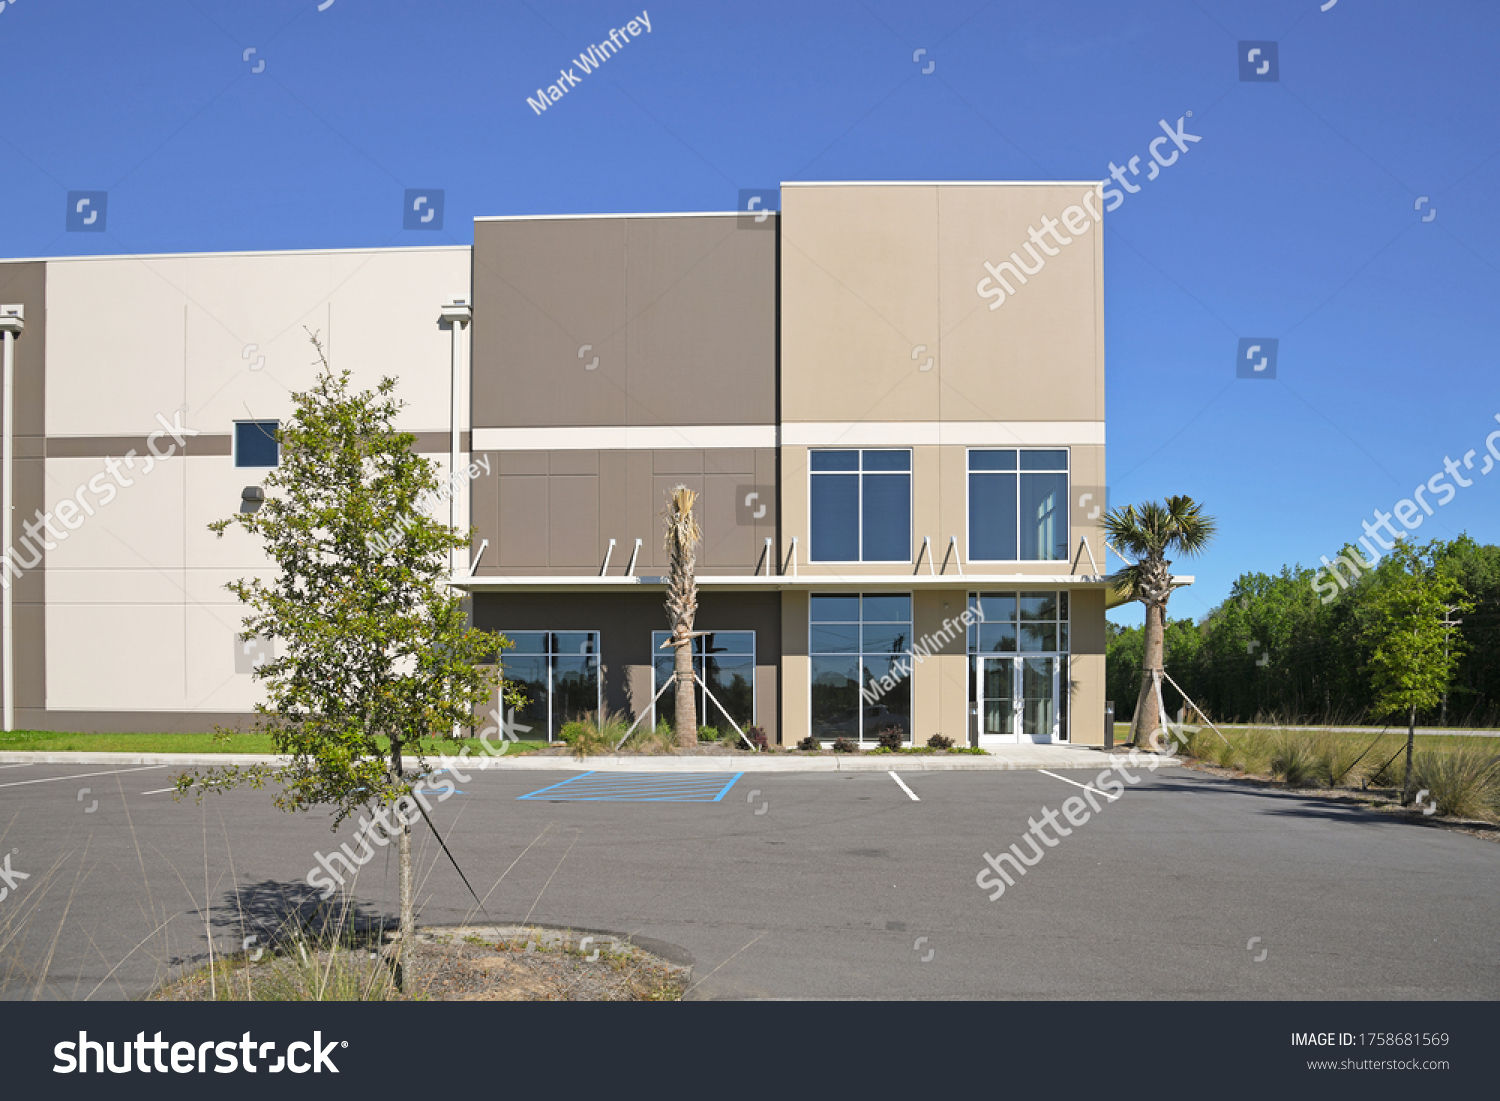 stock-photo-new-commercial-warehouse-bui